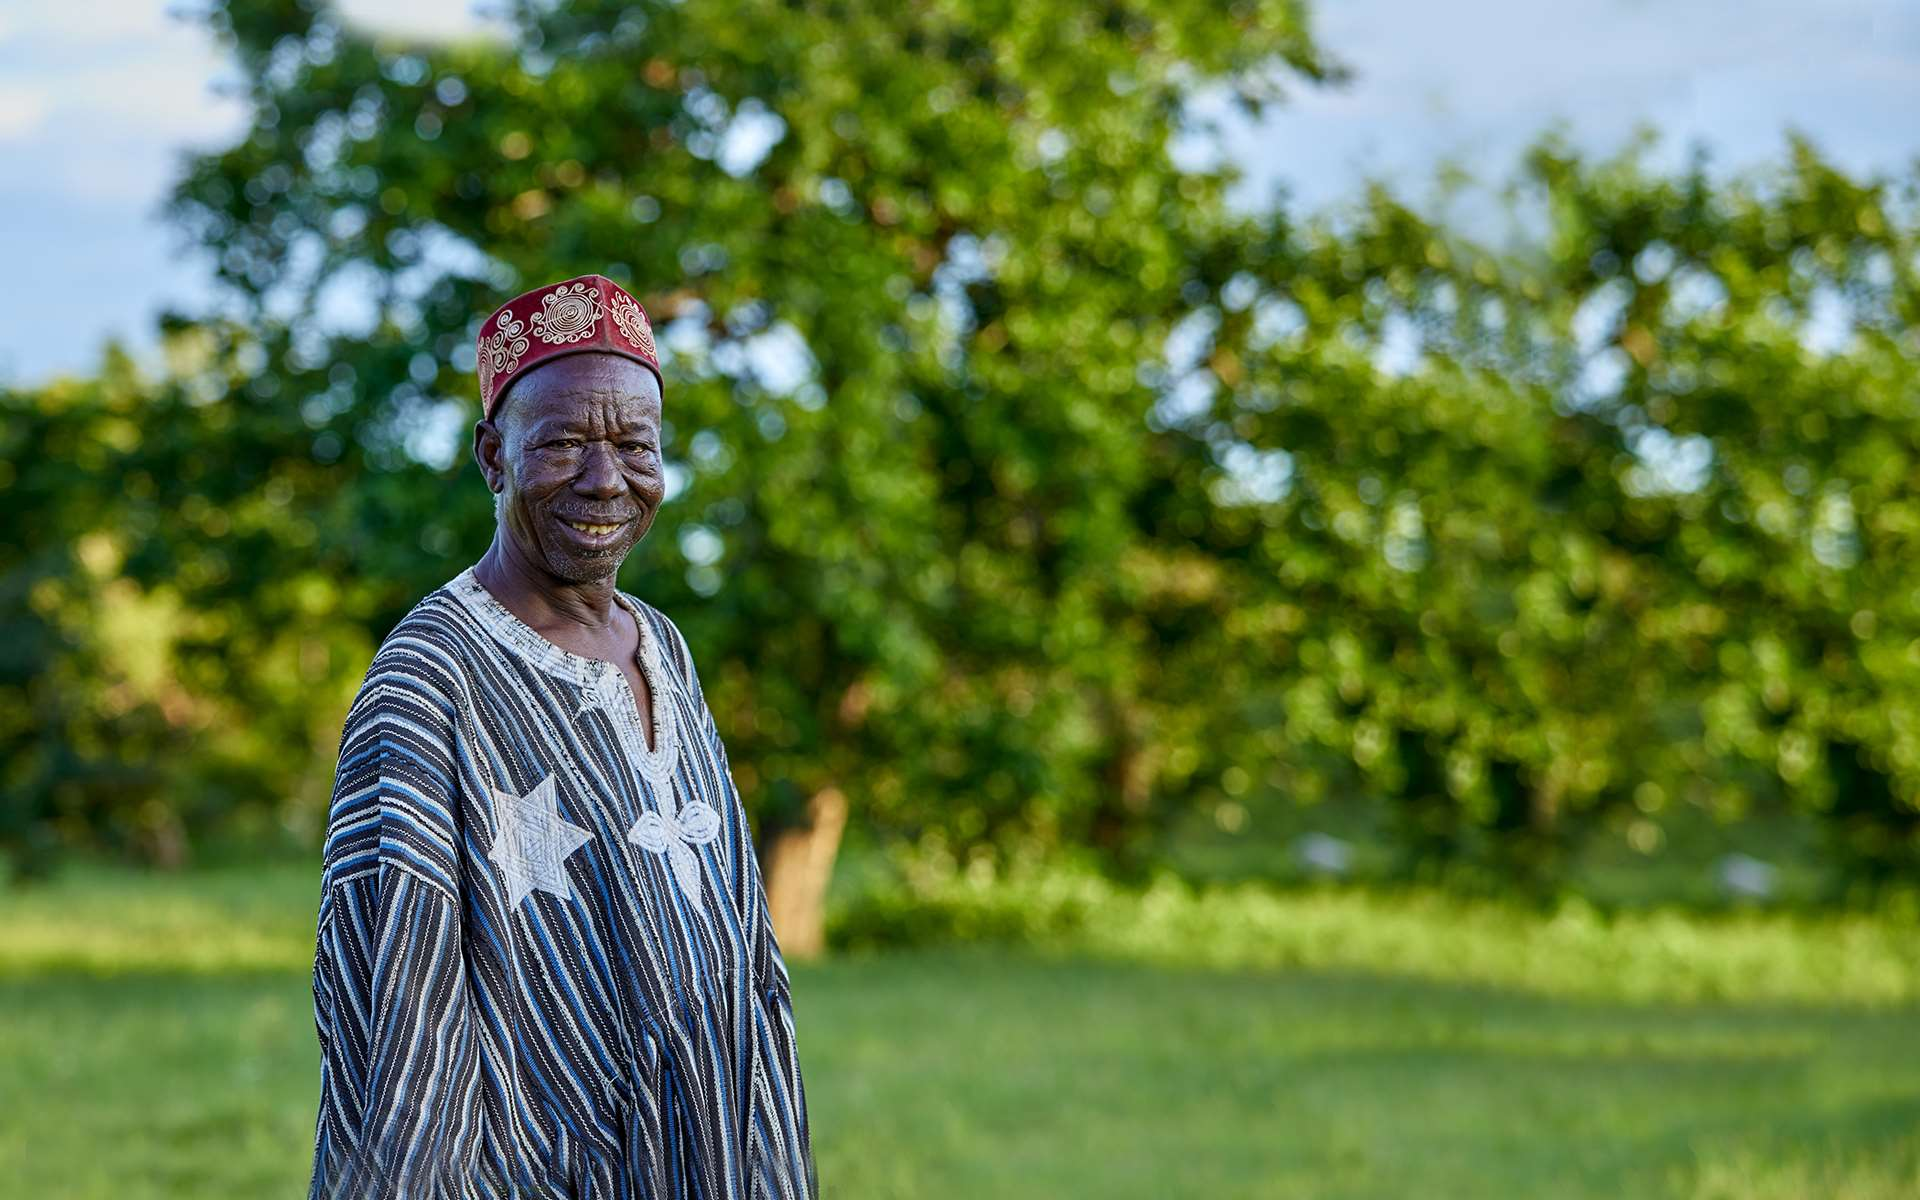 Kazigu, a lead farmer on a Tree Aid project and chief of the village, smiling in front of trees.